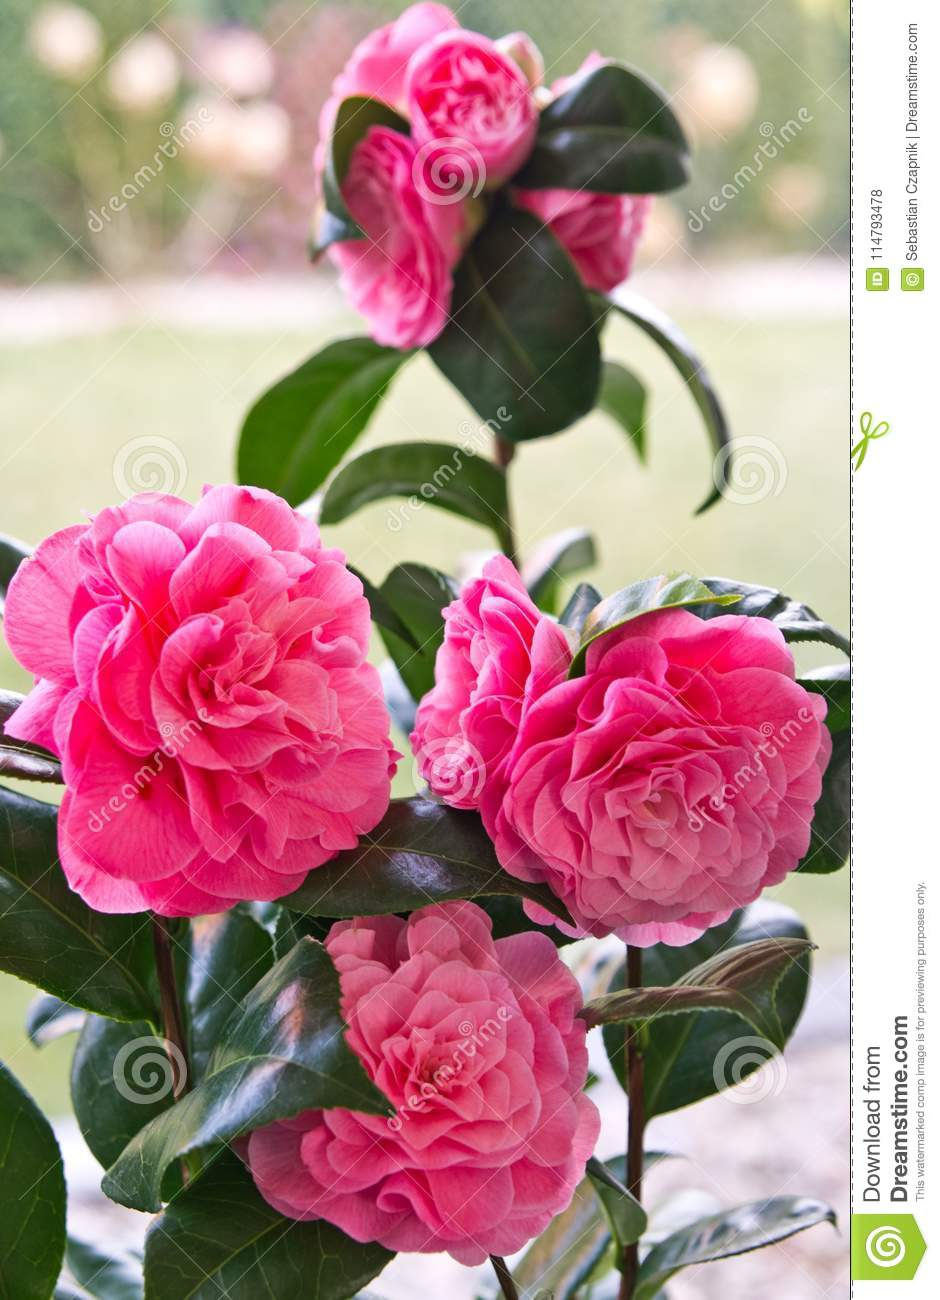 Camellia Japonica Pink Flower Still Life Stock Photo Image Of